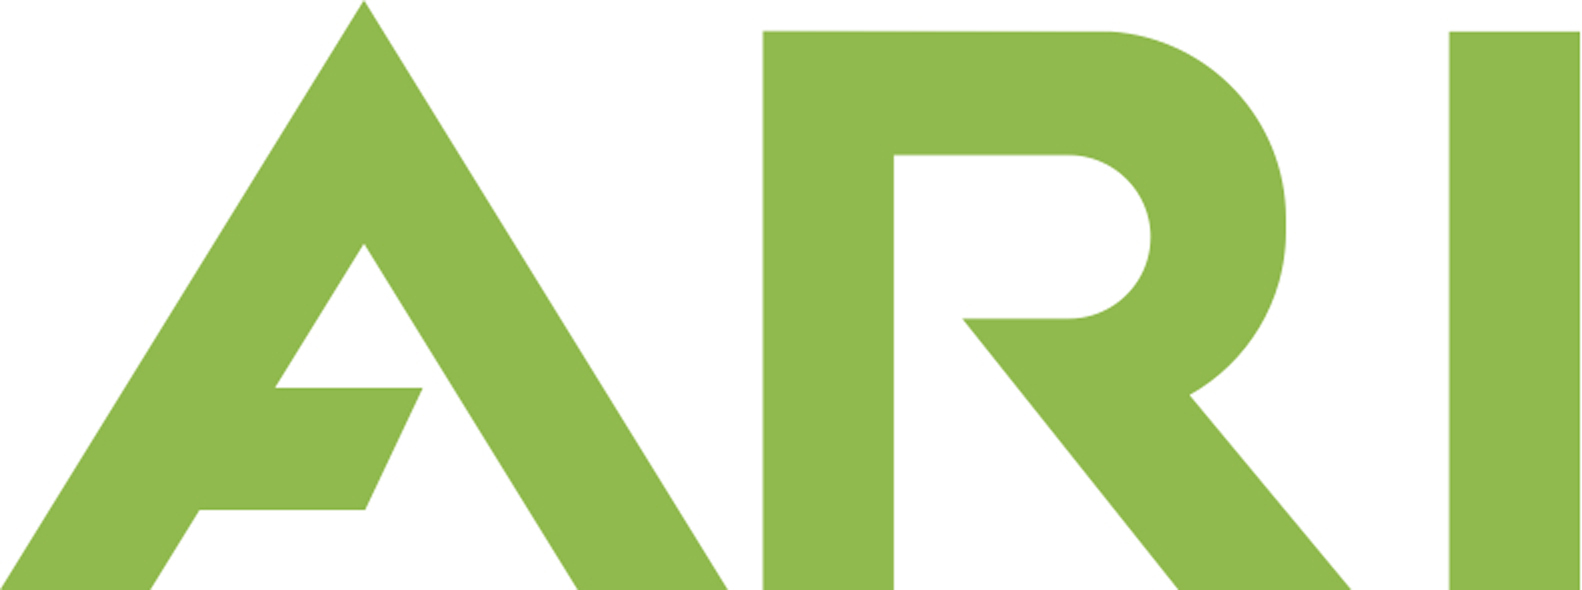 ari network services schedules third quarter fiscal 2017 earnings release and conference call